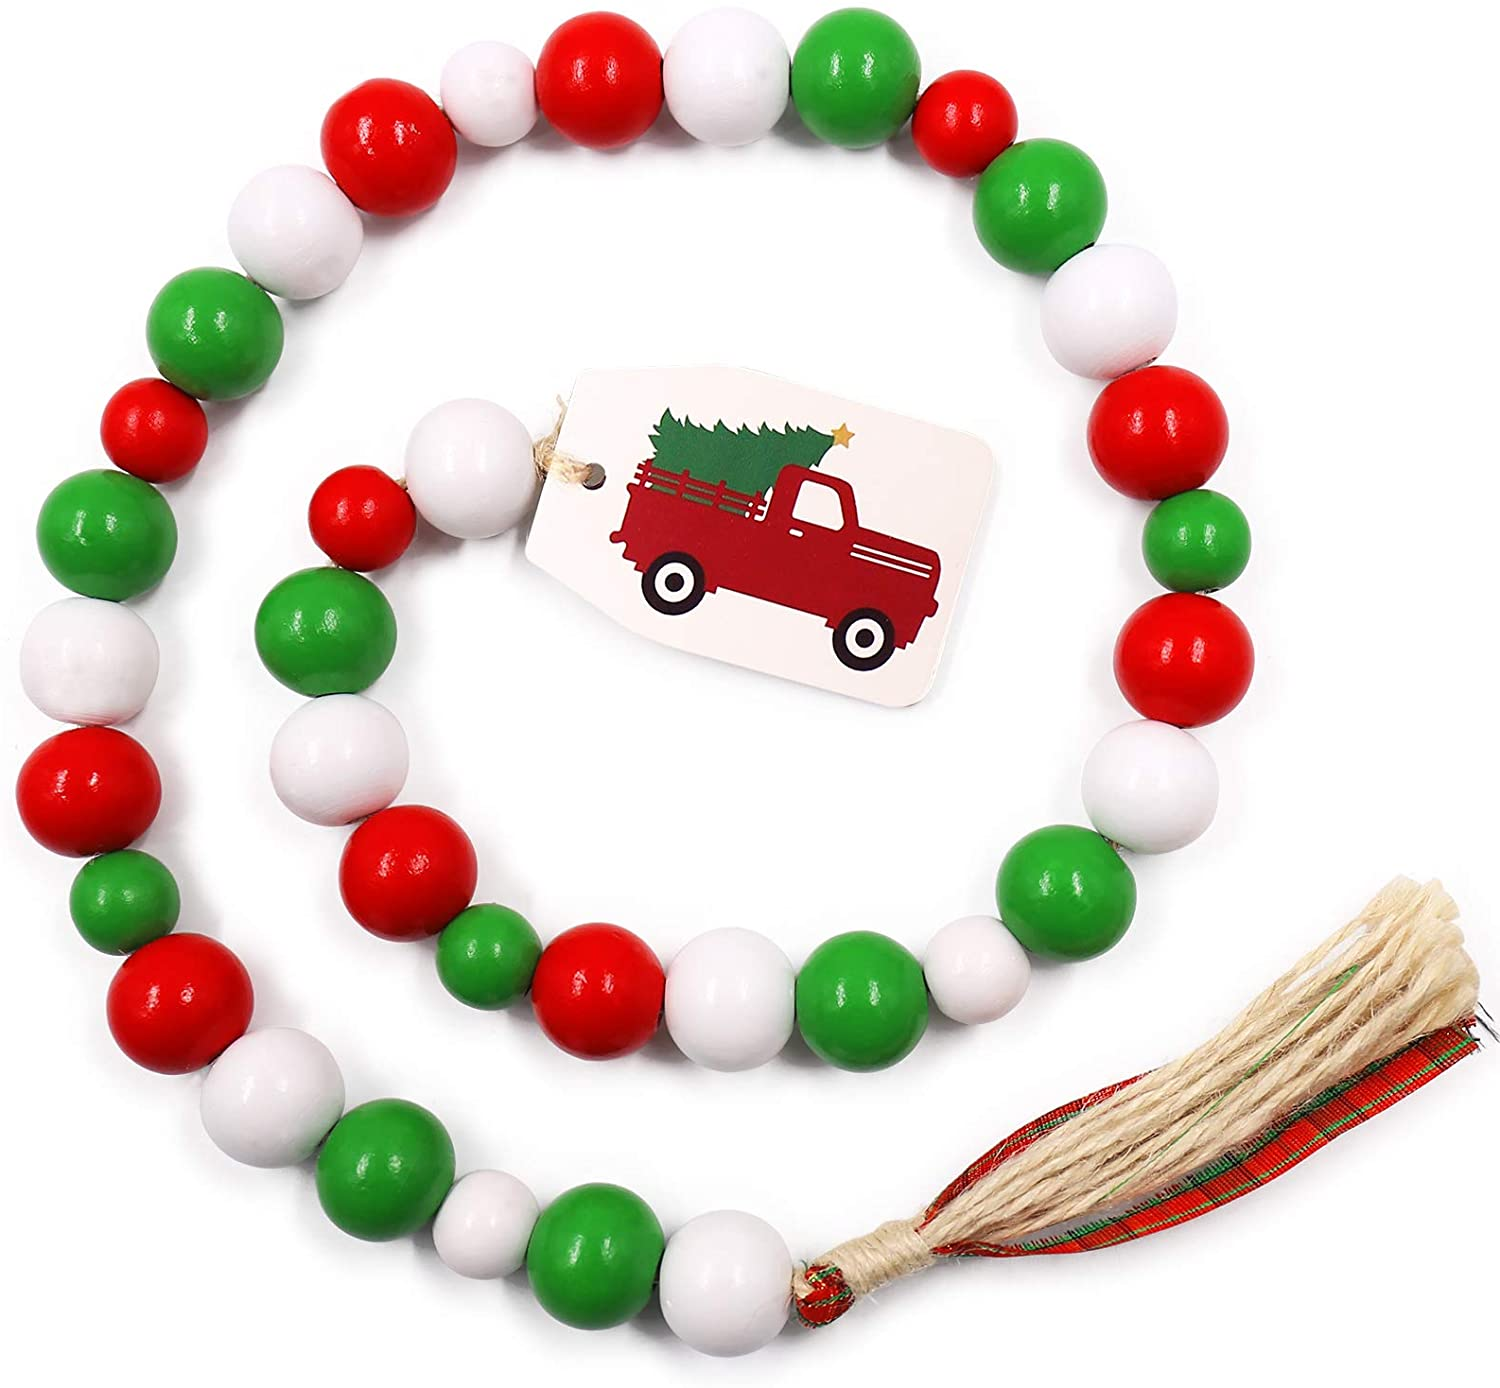 Christmas Wood Bead Garland With Rustic Tassels And Red Truck Tag Natural Beads Garland Xmas Tiered Tray Decorations Holiday Farmhouse Country Rae Dunn Decor Walmart Com Walmart Com